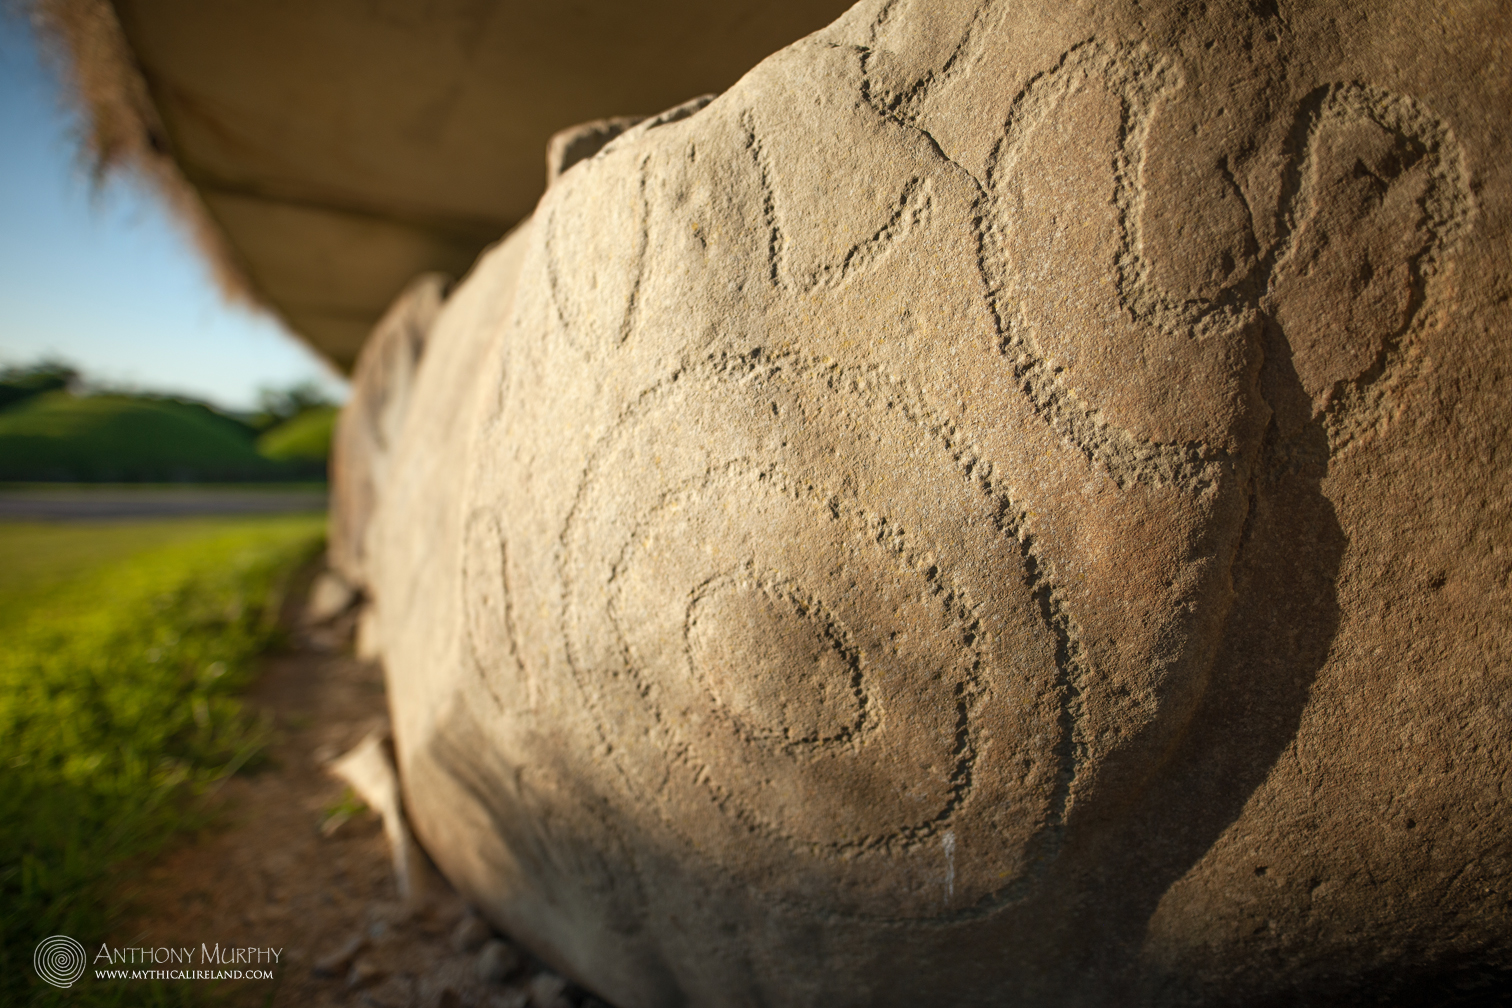 Knowth Kerb Stone 79 (In detail)